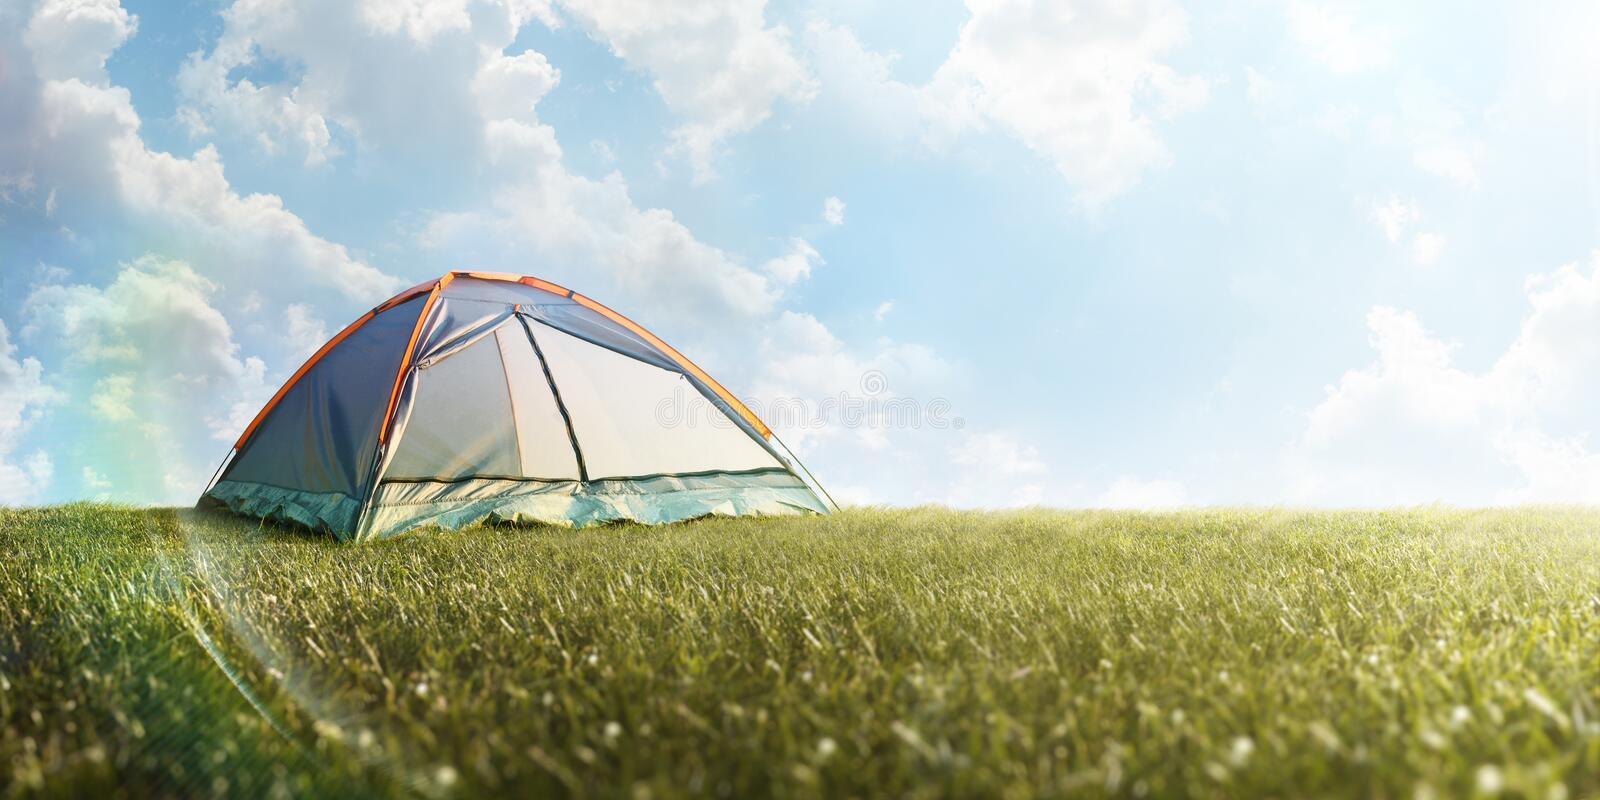 Camping tent in grass. Tourism. Adventure. Hike. Background. Panorama royalty free stock photos